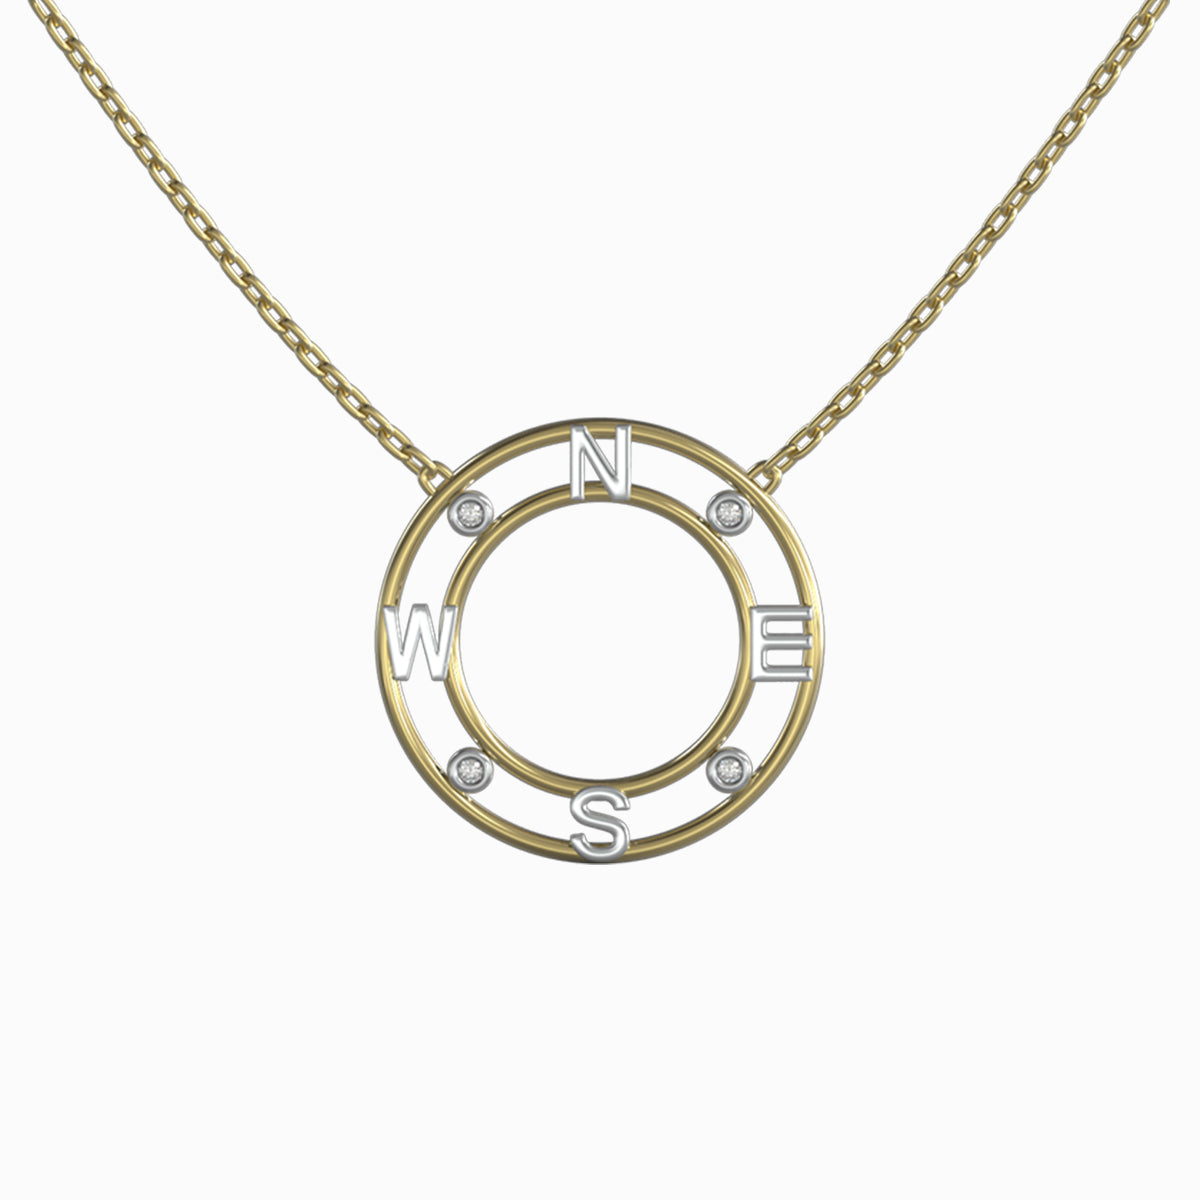 Shimansky True North Light Pendant 18k yellow gold